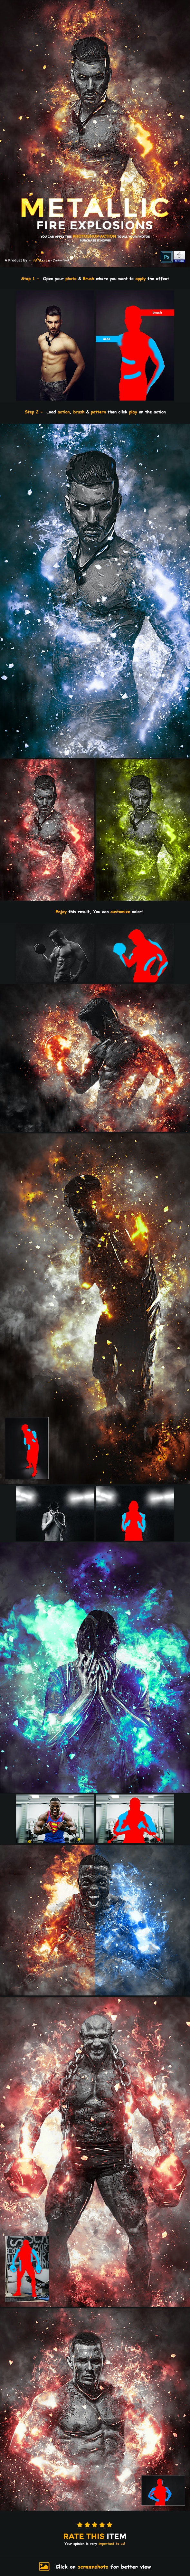 Metallic - Fire Explosion PS Action - Photo Effects Actions